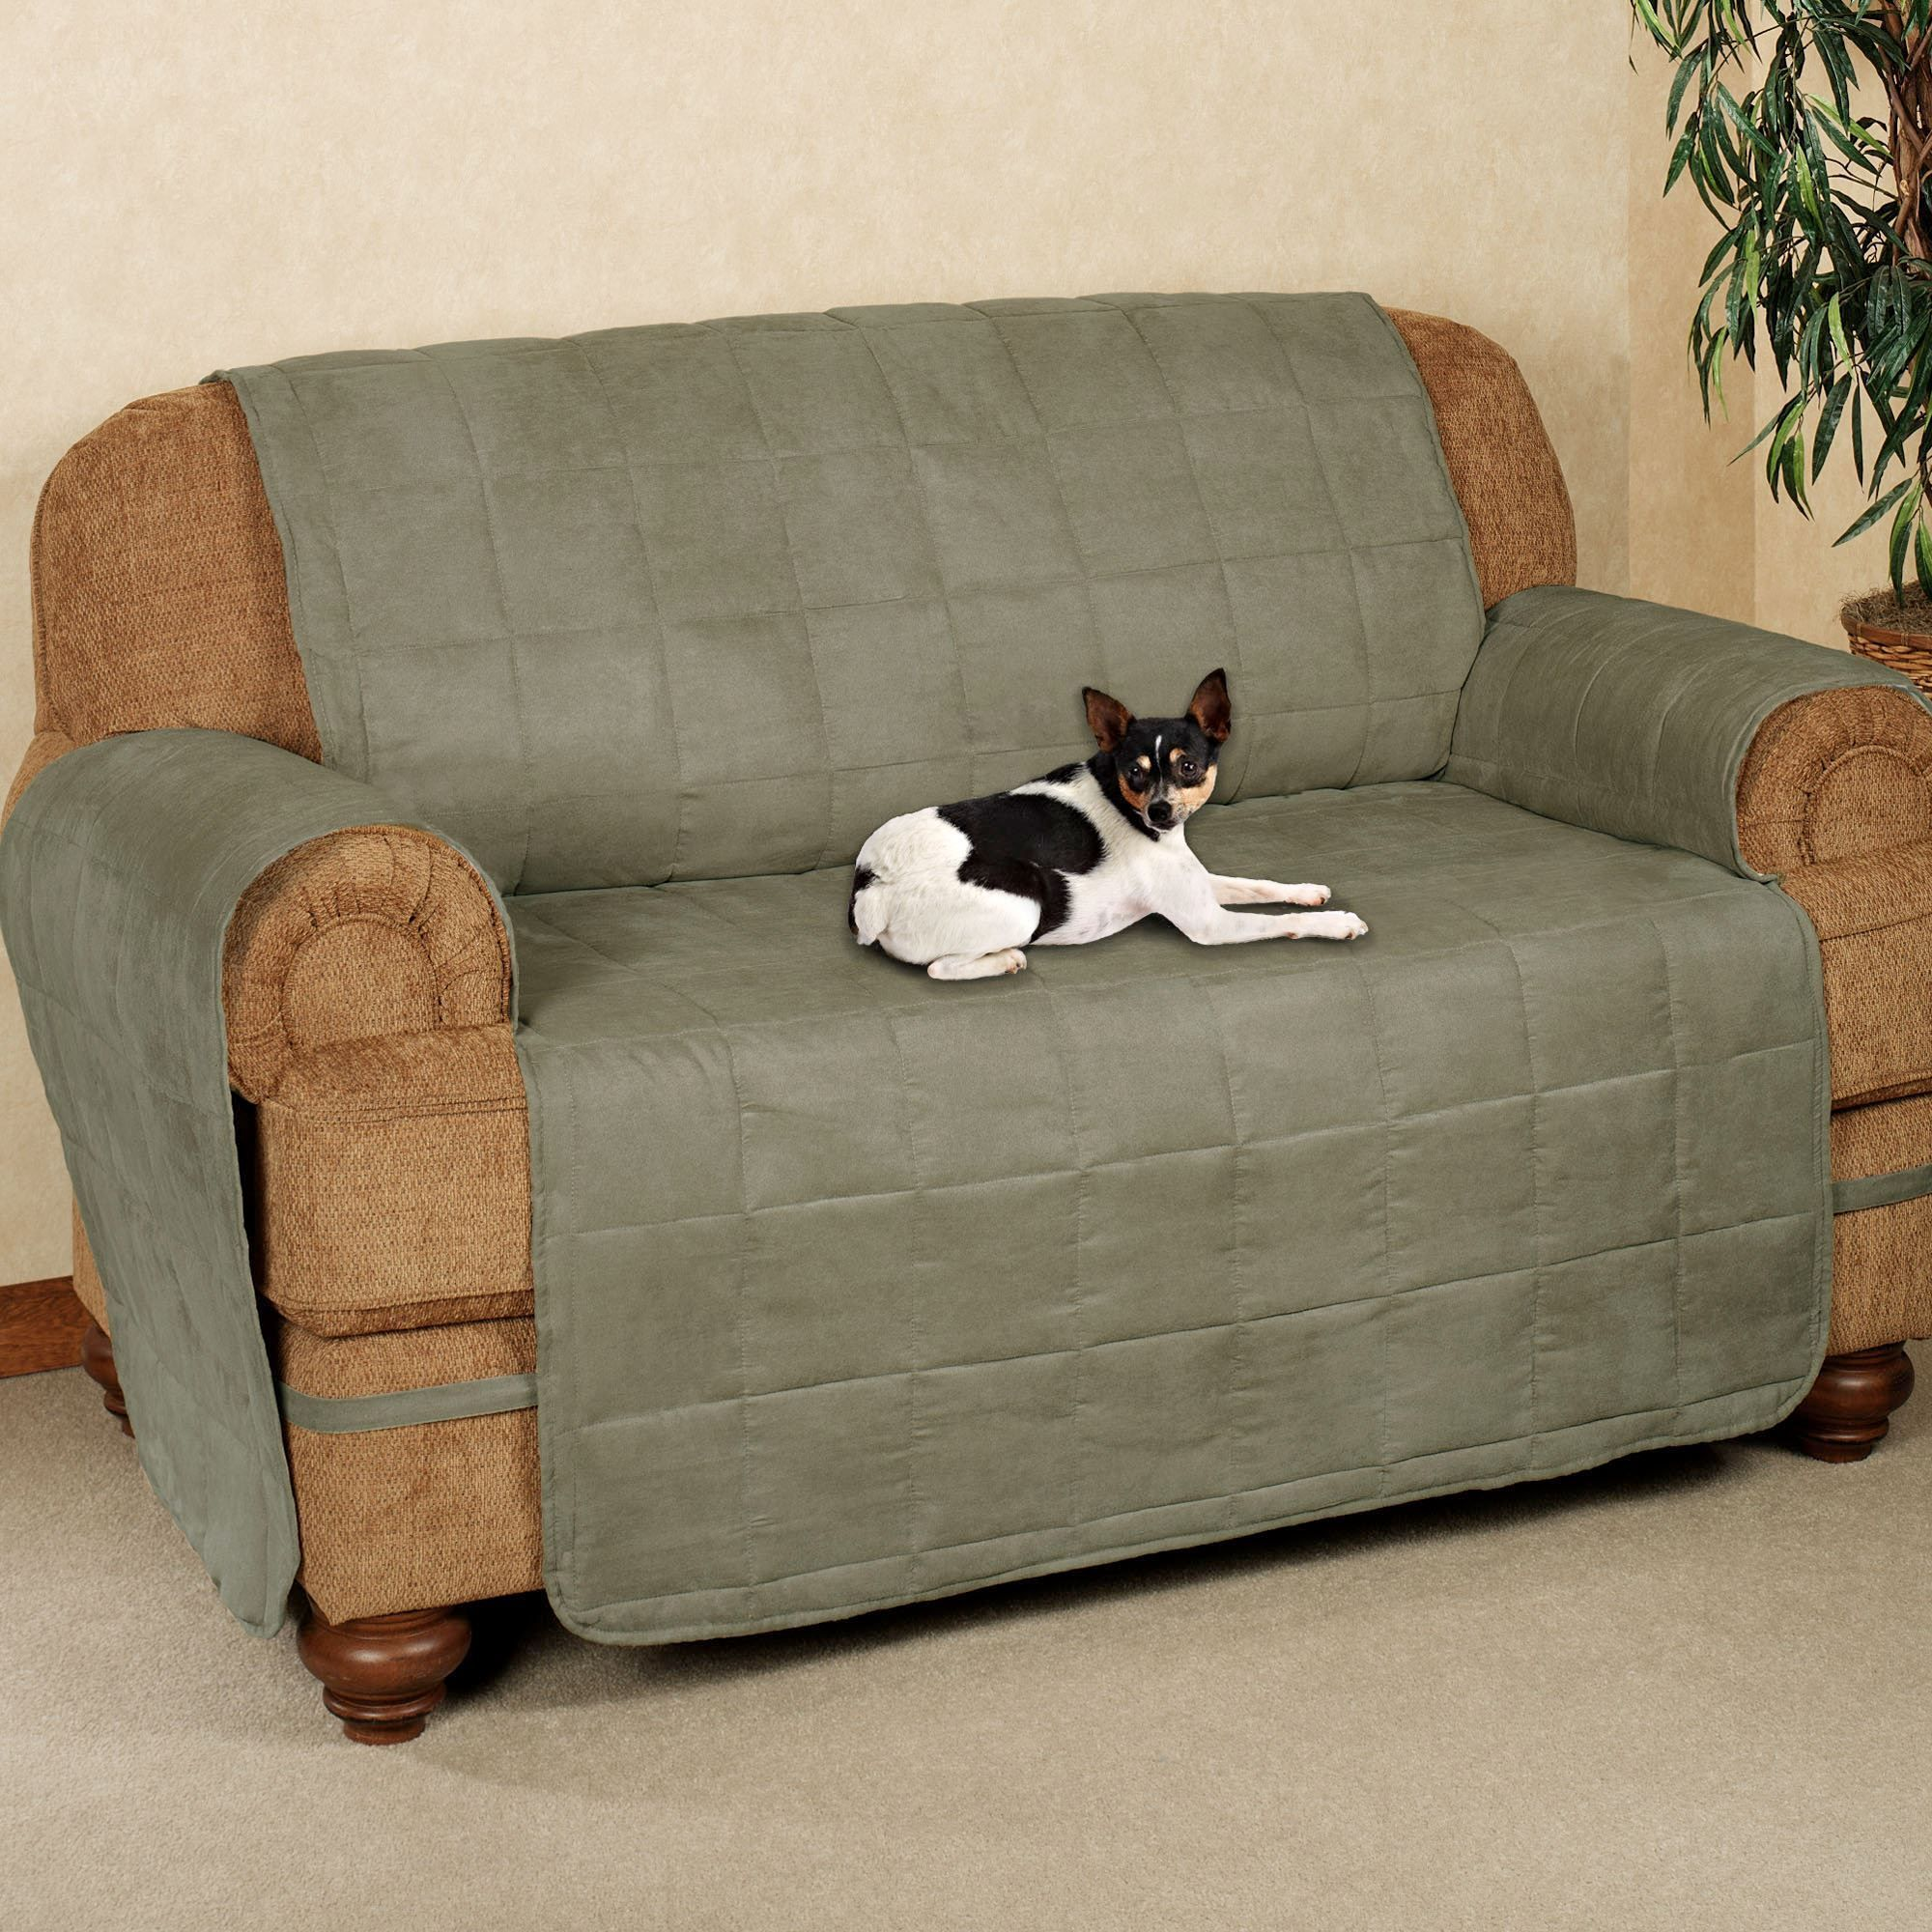 Solvit Full Coverage Pet Dog Cat Furniture Sofa Couch Protector